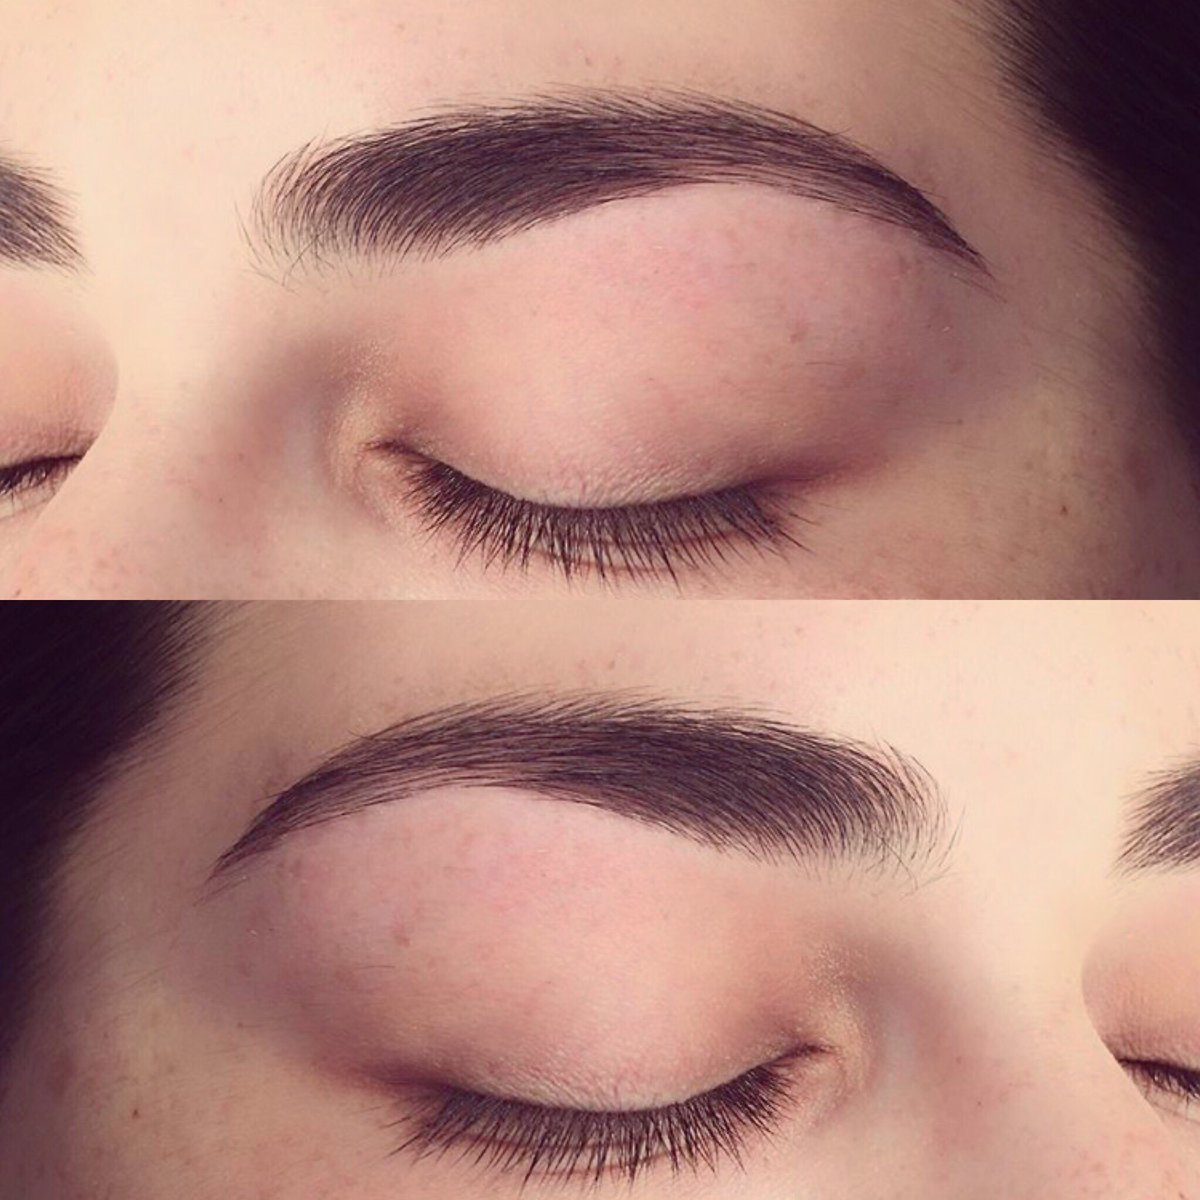 Brow Chic on Twitter: